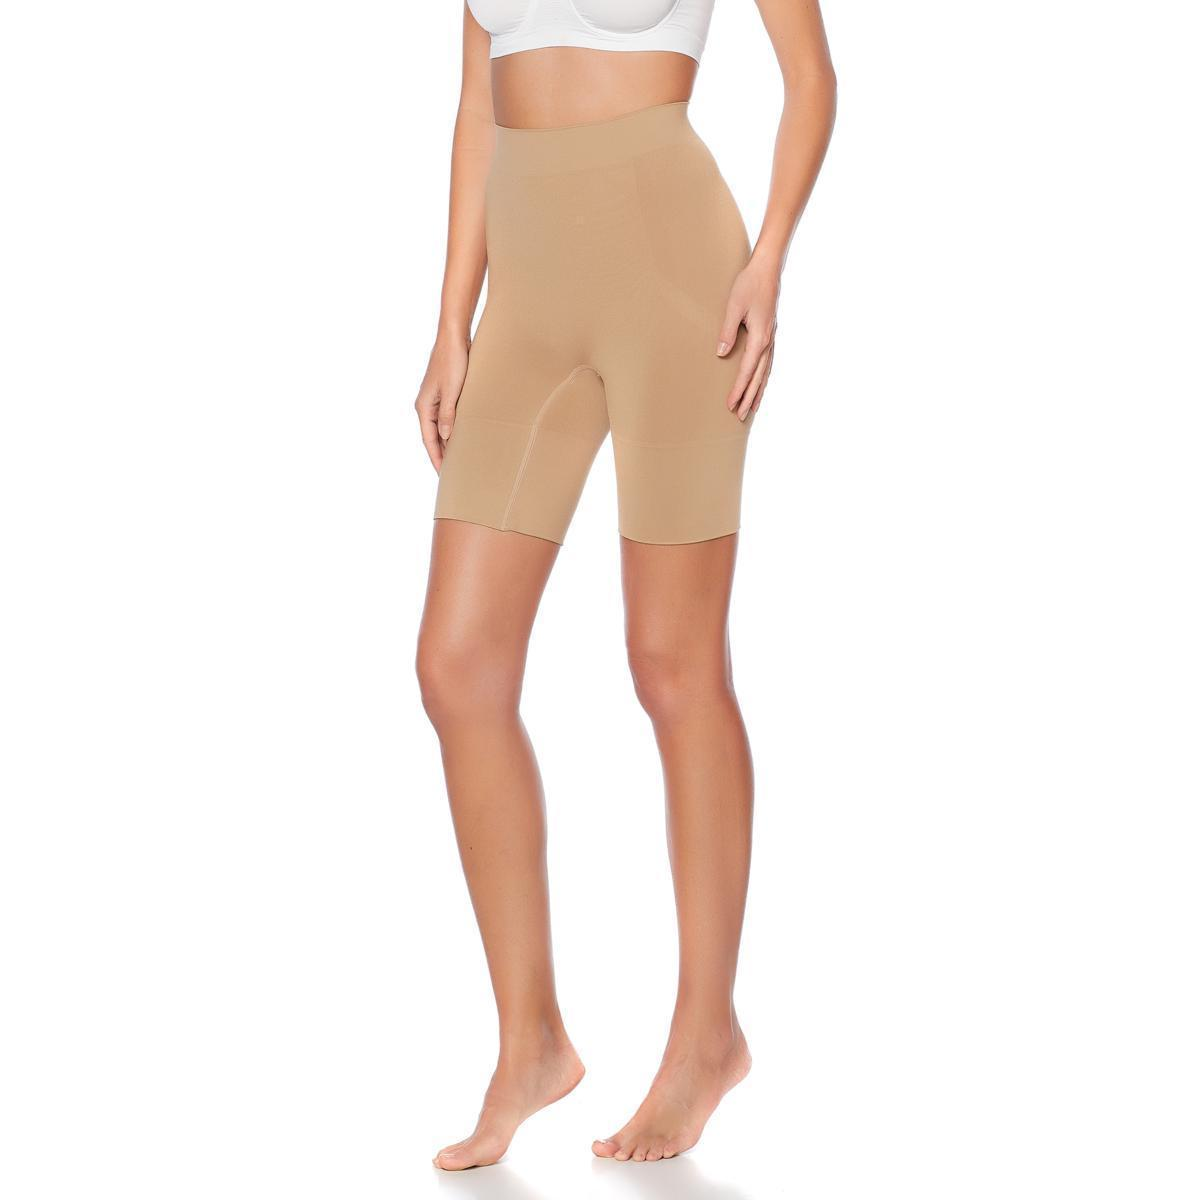 Primary image for Nearly Nude Smoothing Thigh Shaper in Nude, M/L